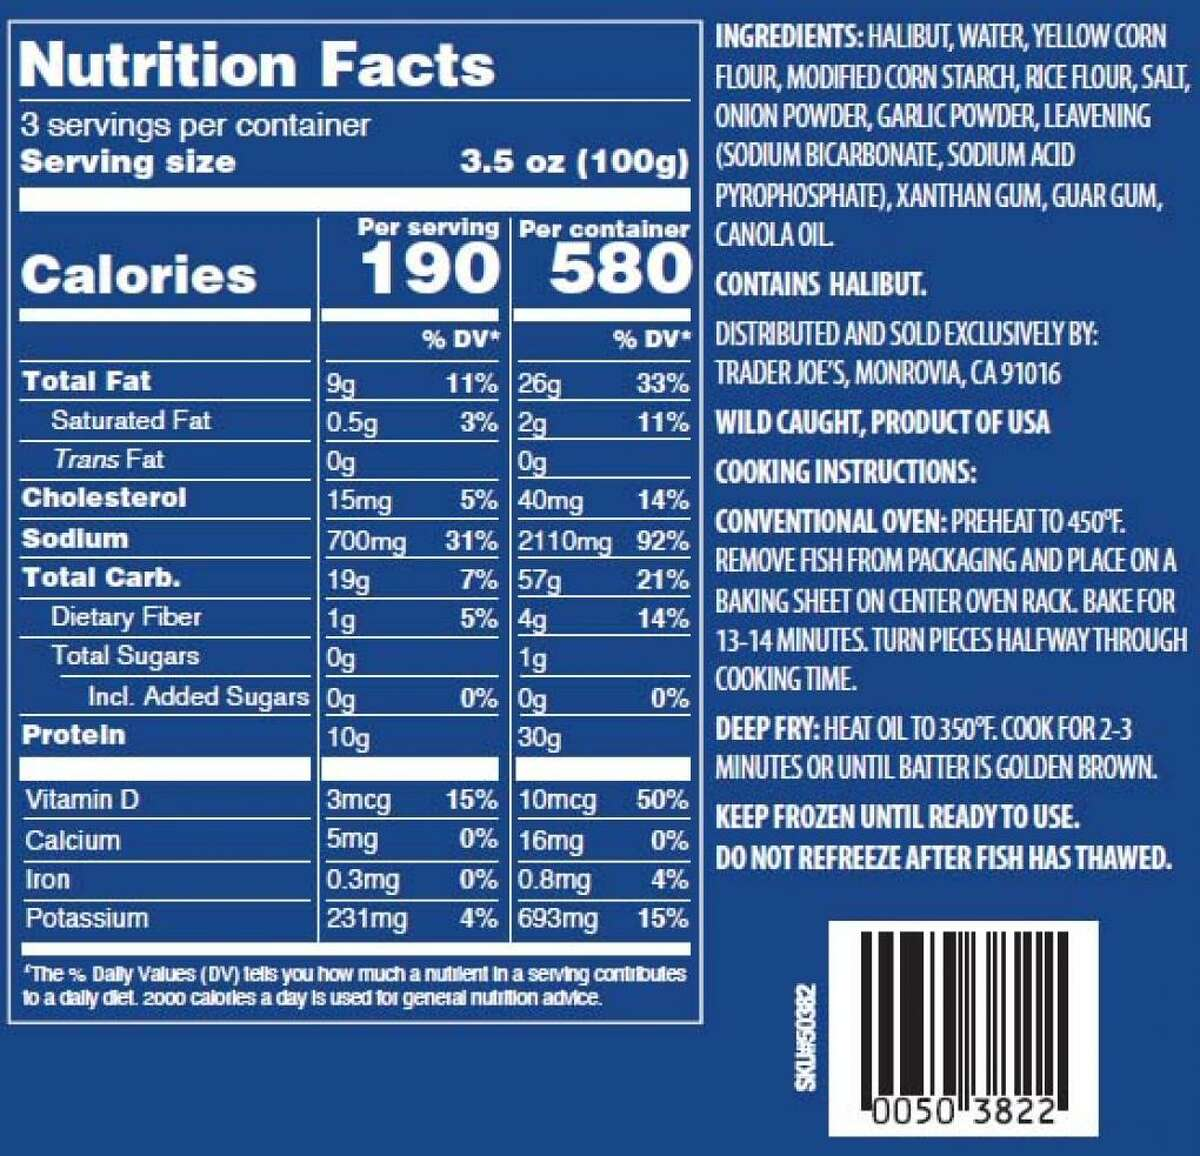 Trader Joe's Battered Halibut nutrition facts. Anyone who has the product can check the box for code 537312620